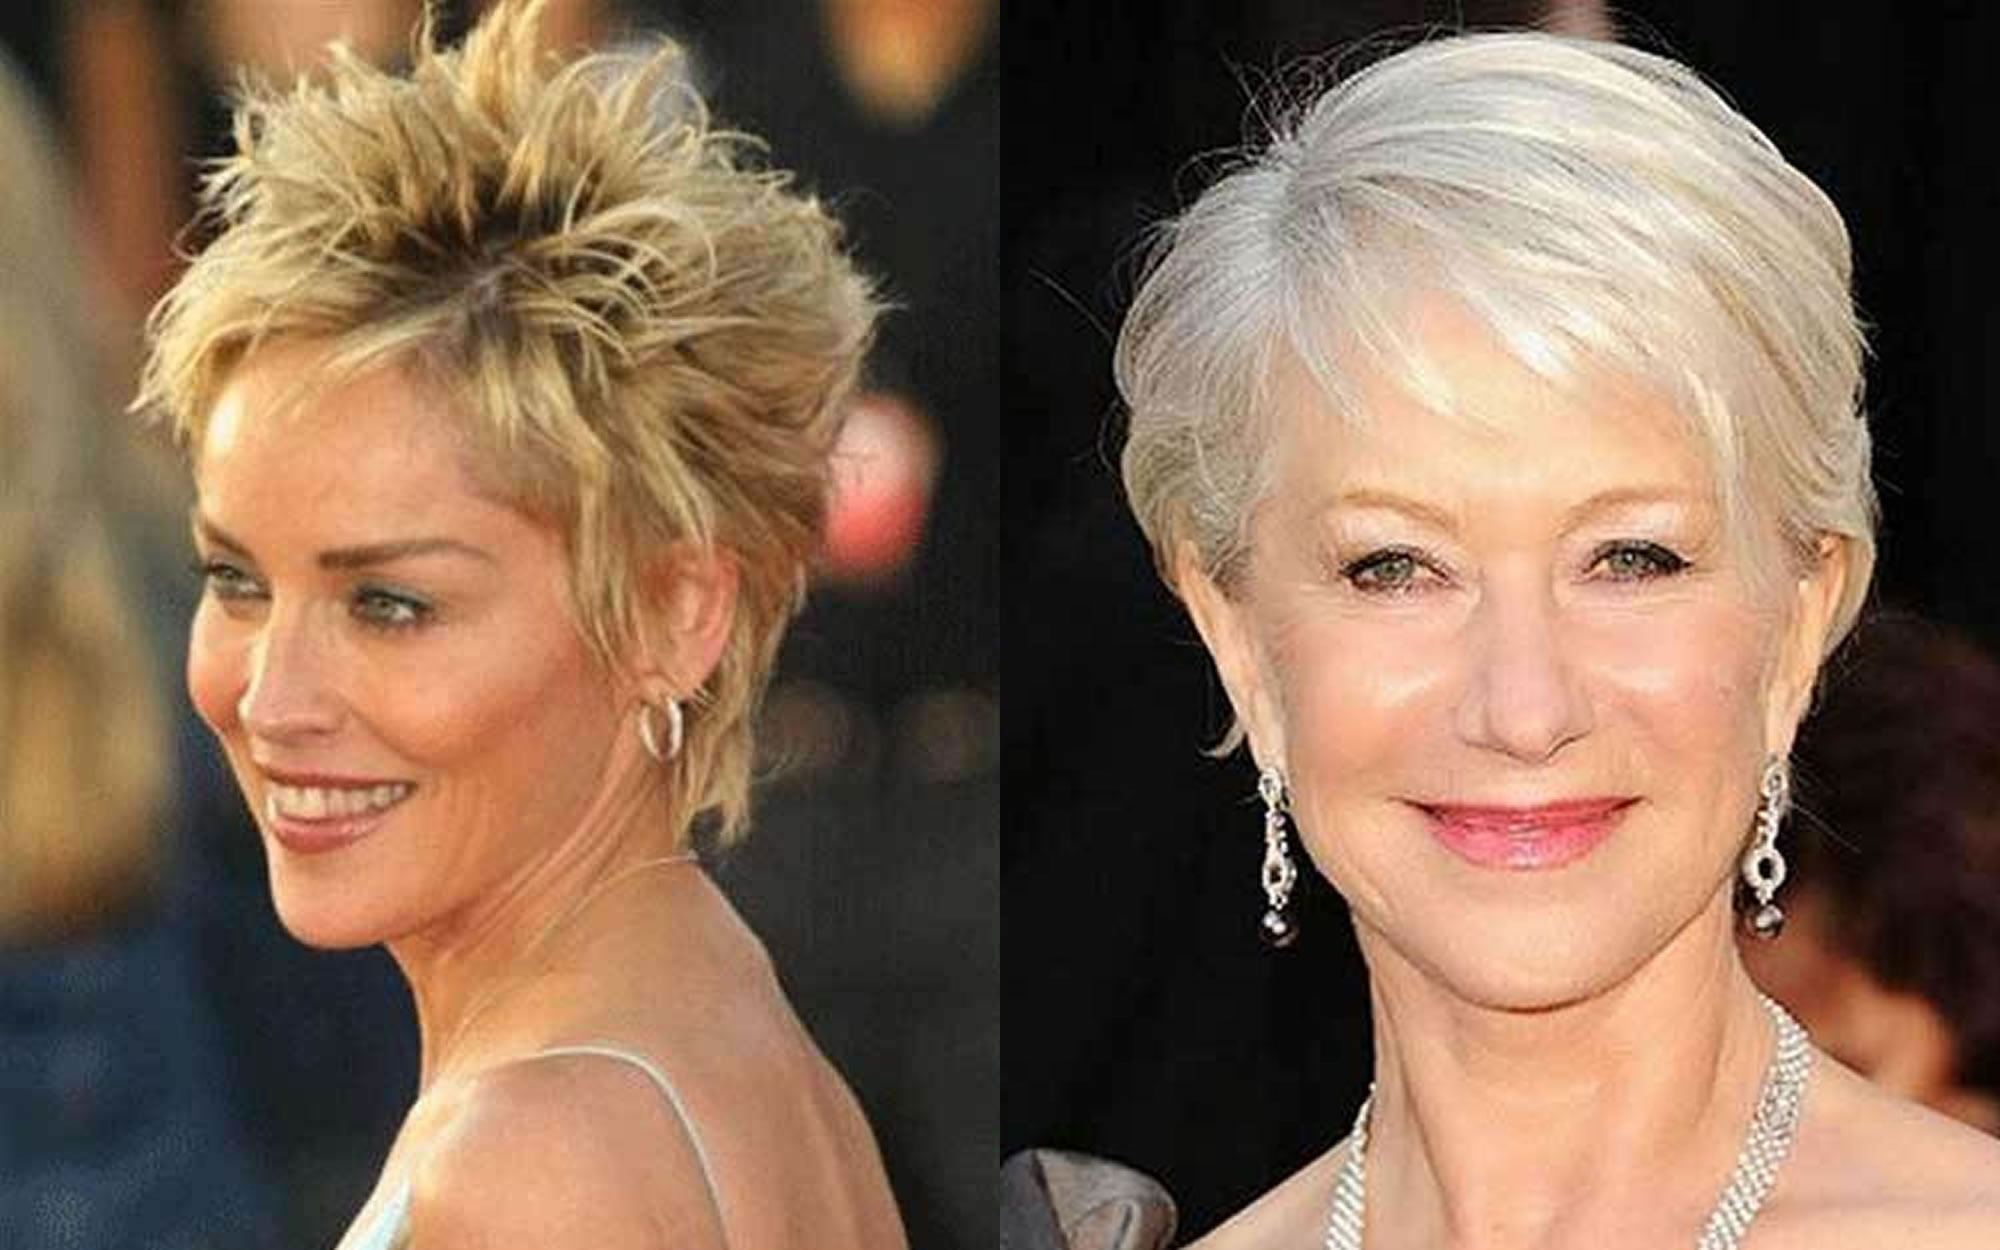 Hairstyles 2019: Short Haircut Images For Older Women & Pixie + Bob Fine